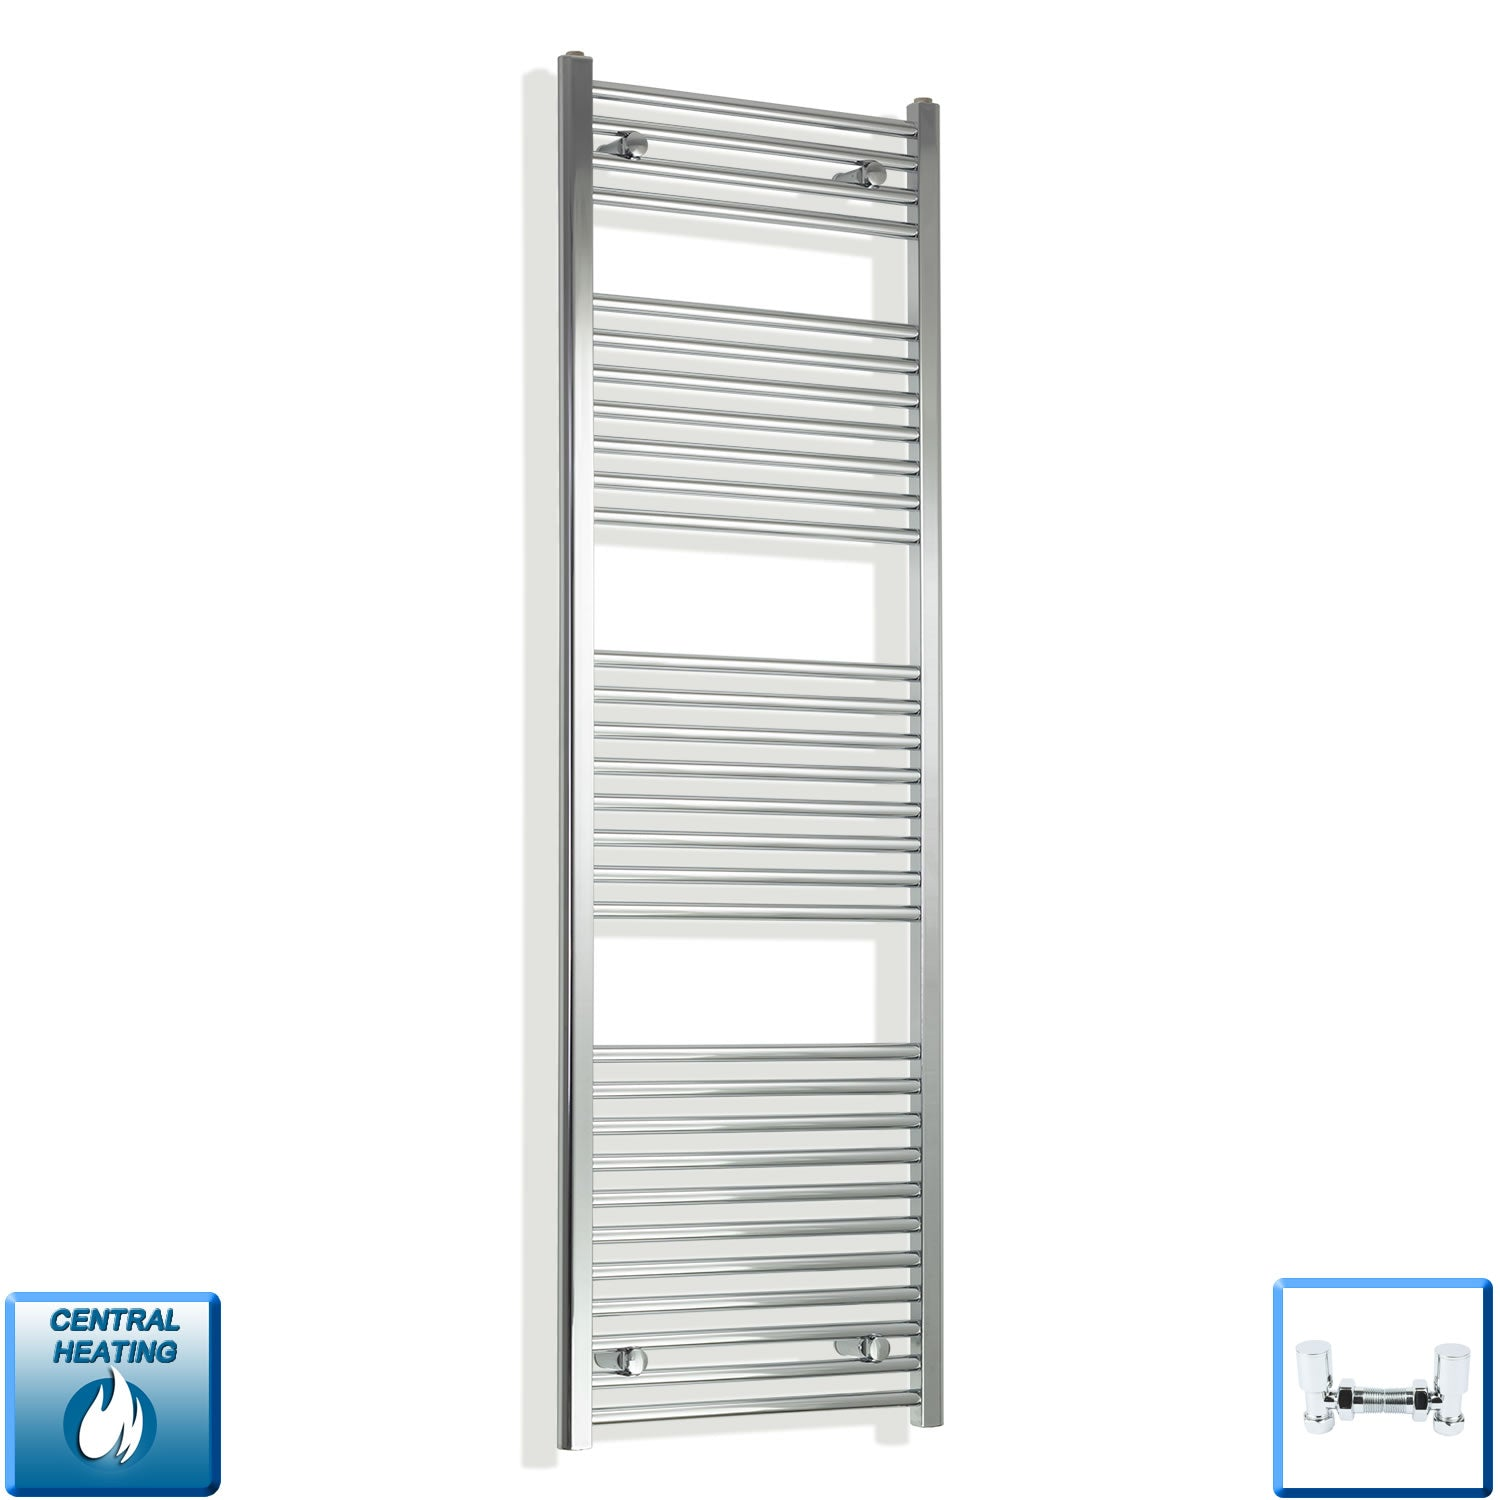 450mm Wide 1700mm High Chrome Towel Rail Radiator With Angled Valve